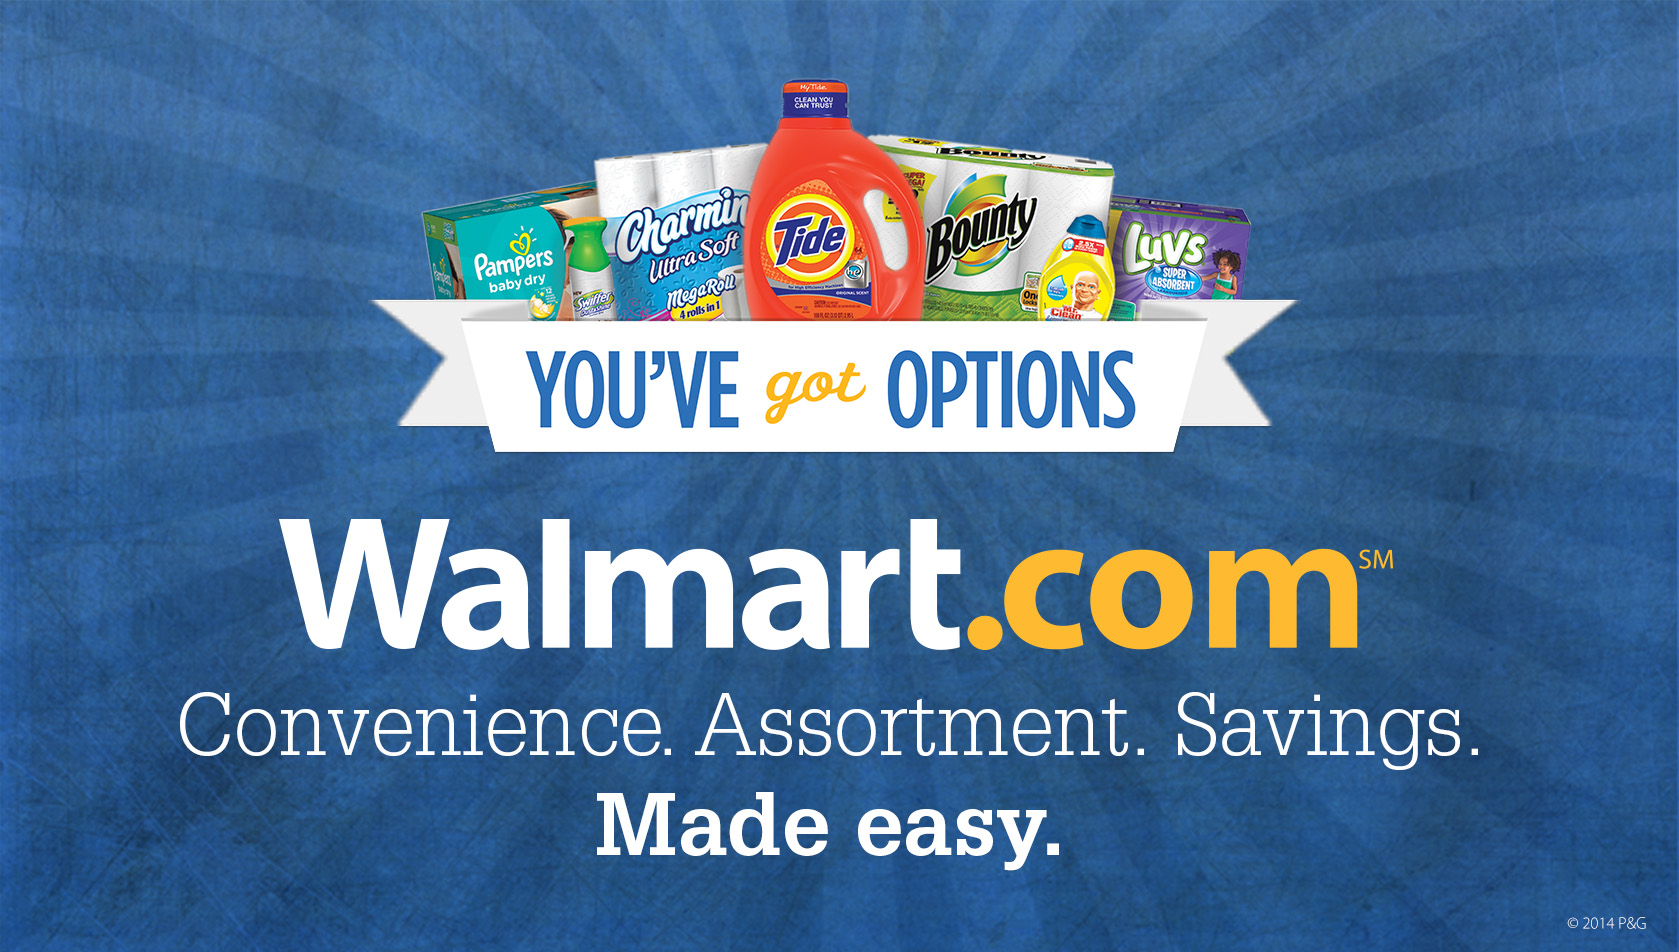 Find p g products at walmart weiser academy for How to buy goods online